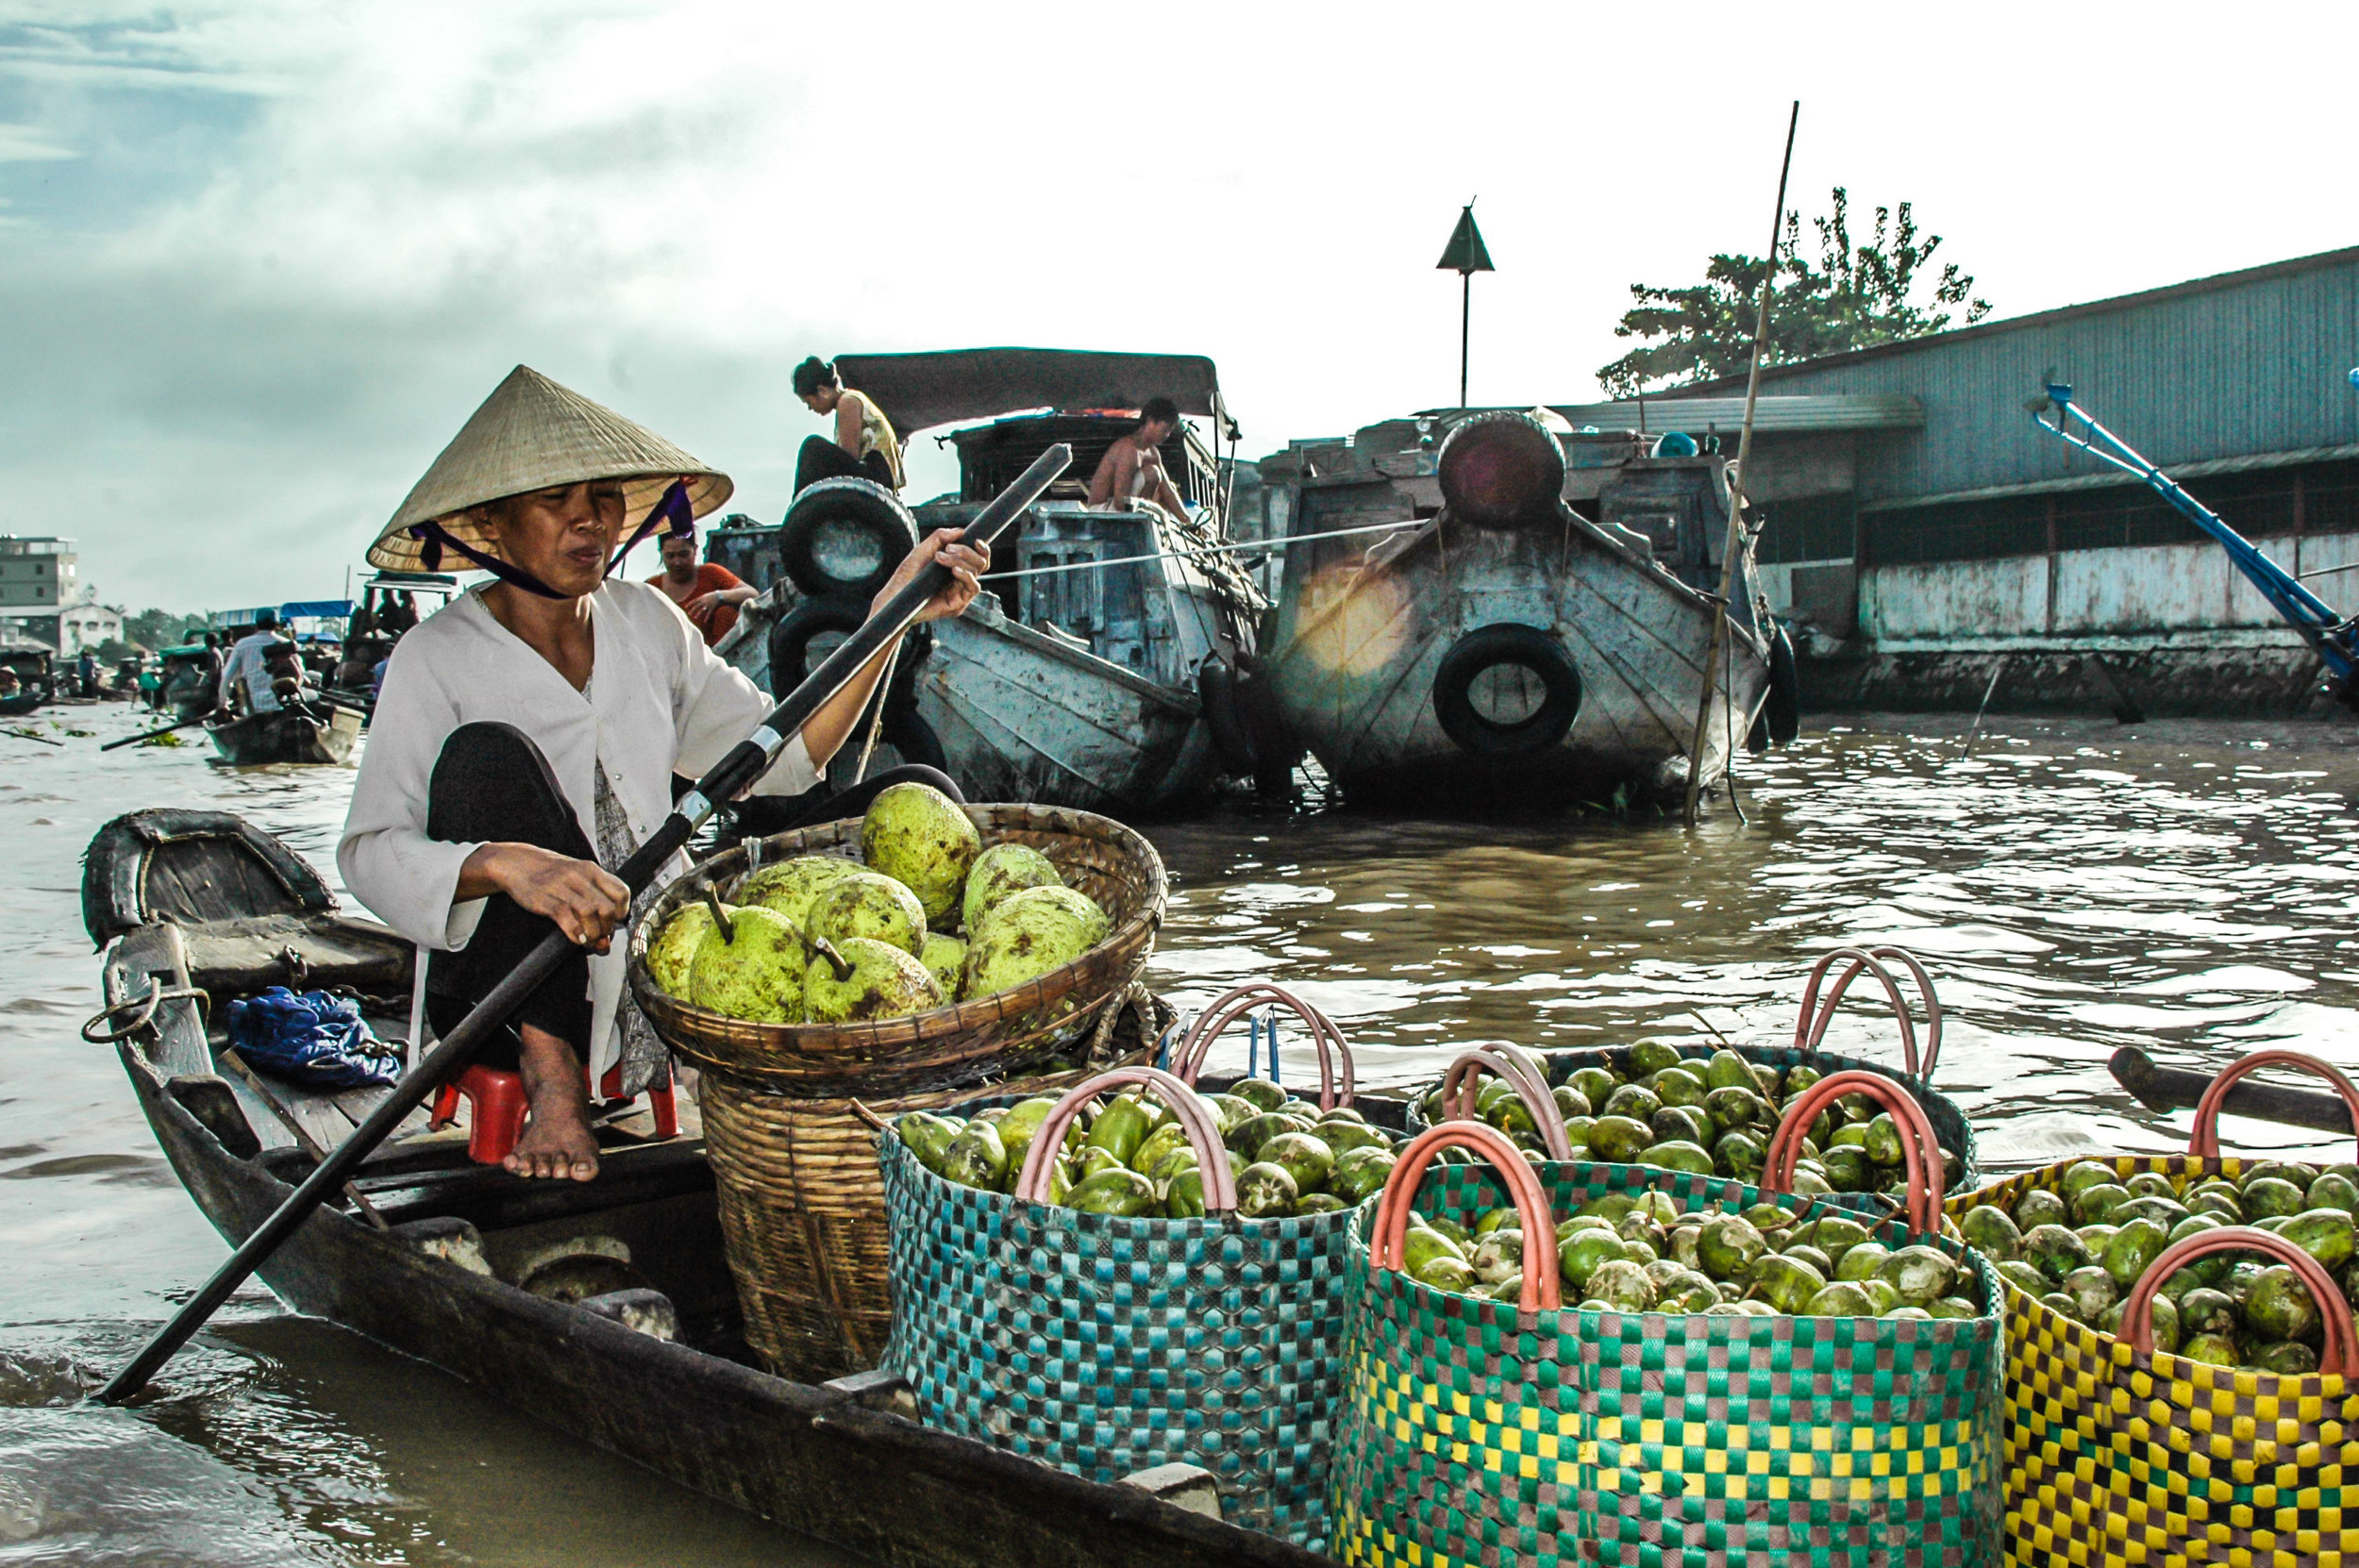 LifeontheMekongDelta-15.jpg